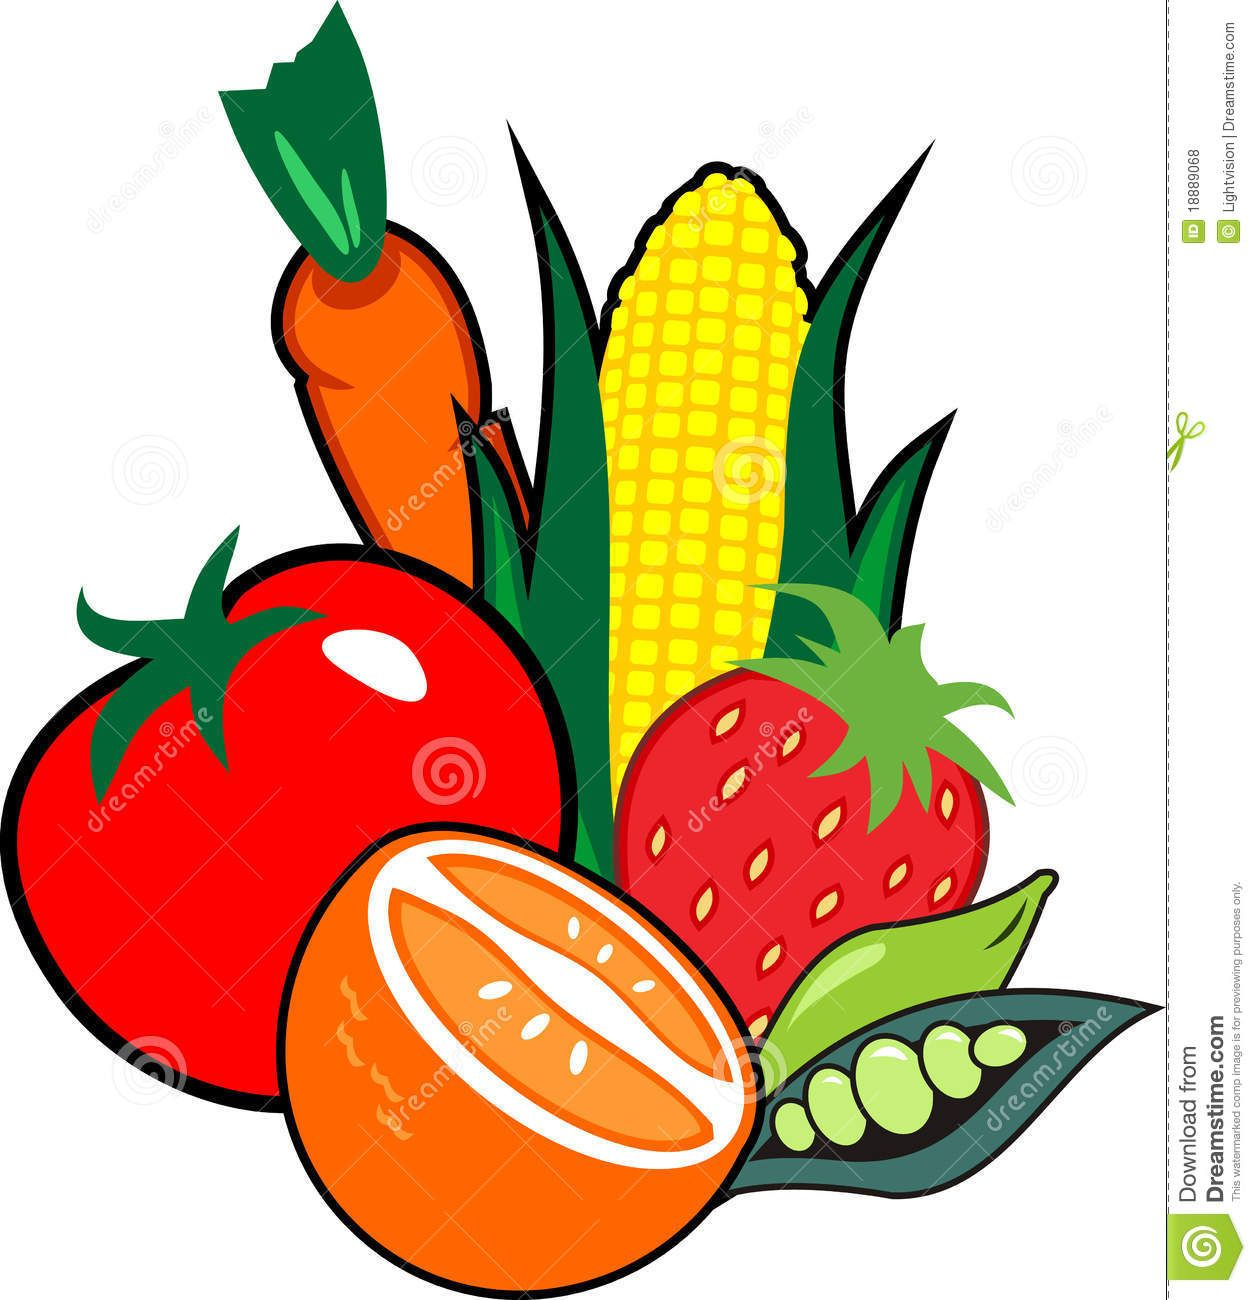 fruit border clip art use these free images for your websites art rh pinterest com fruit and veggie clipart fruit and vegetable clip art free